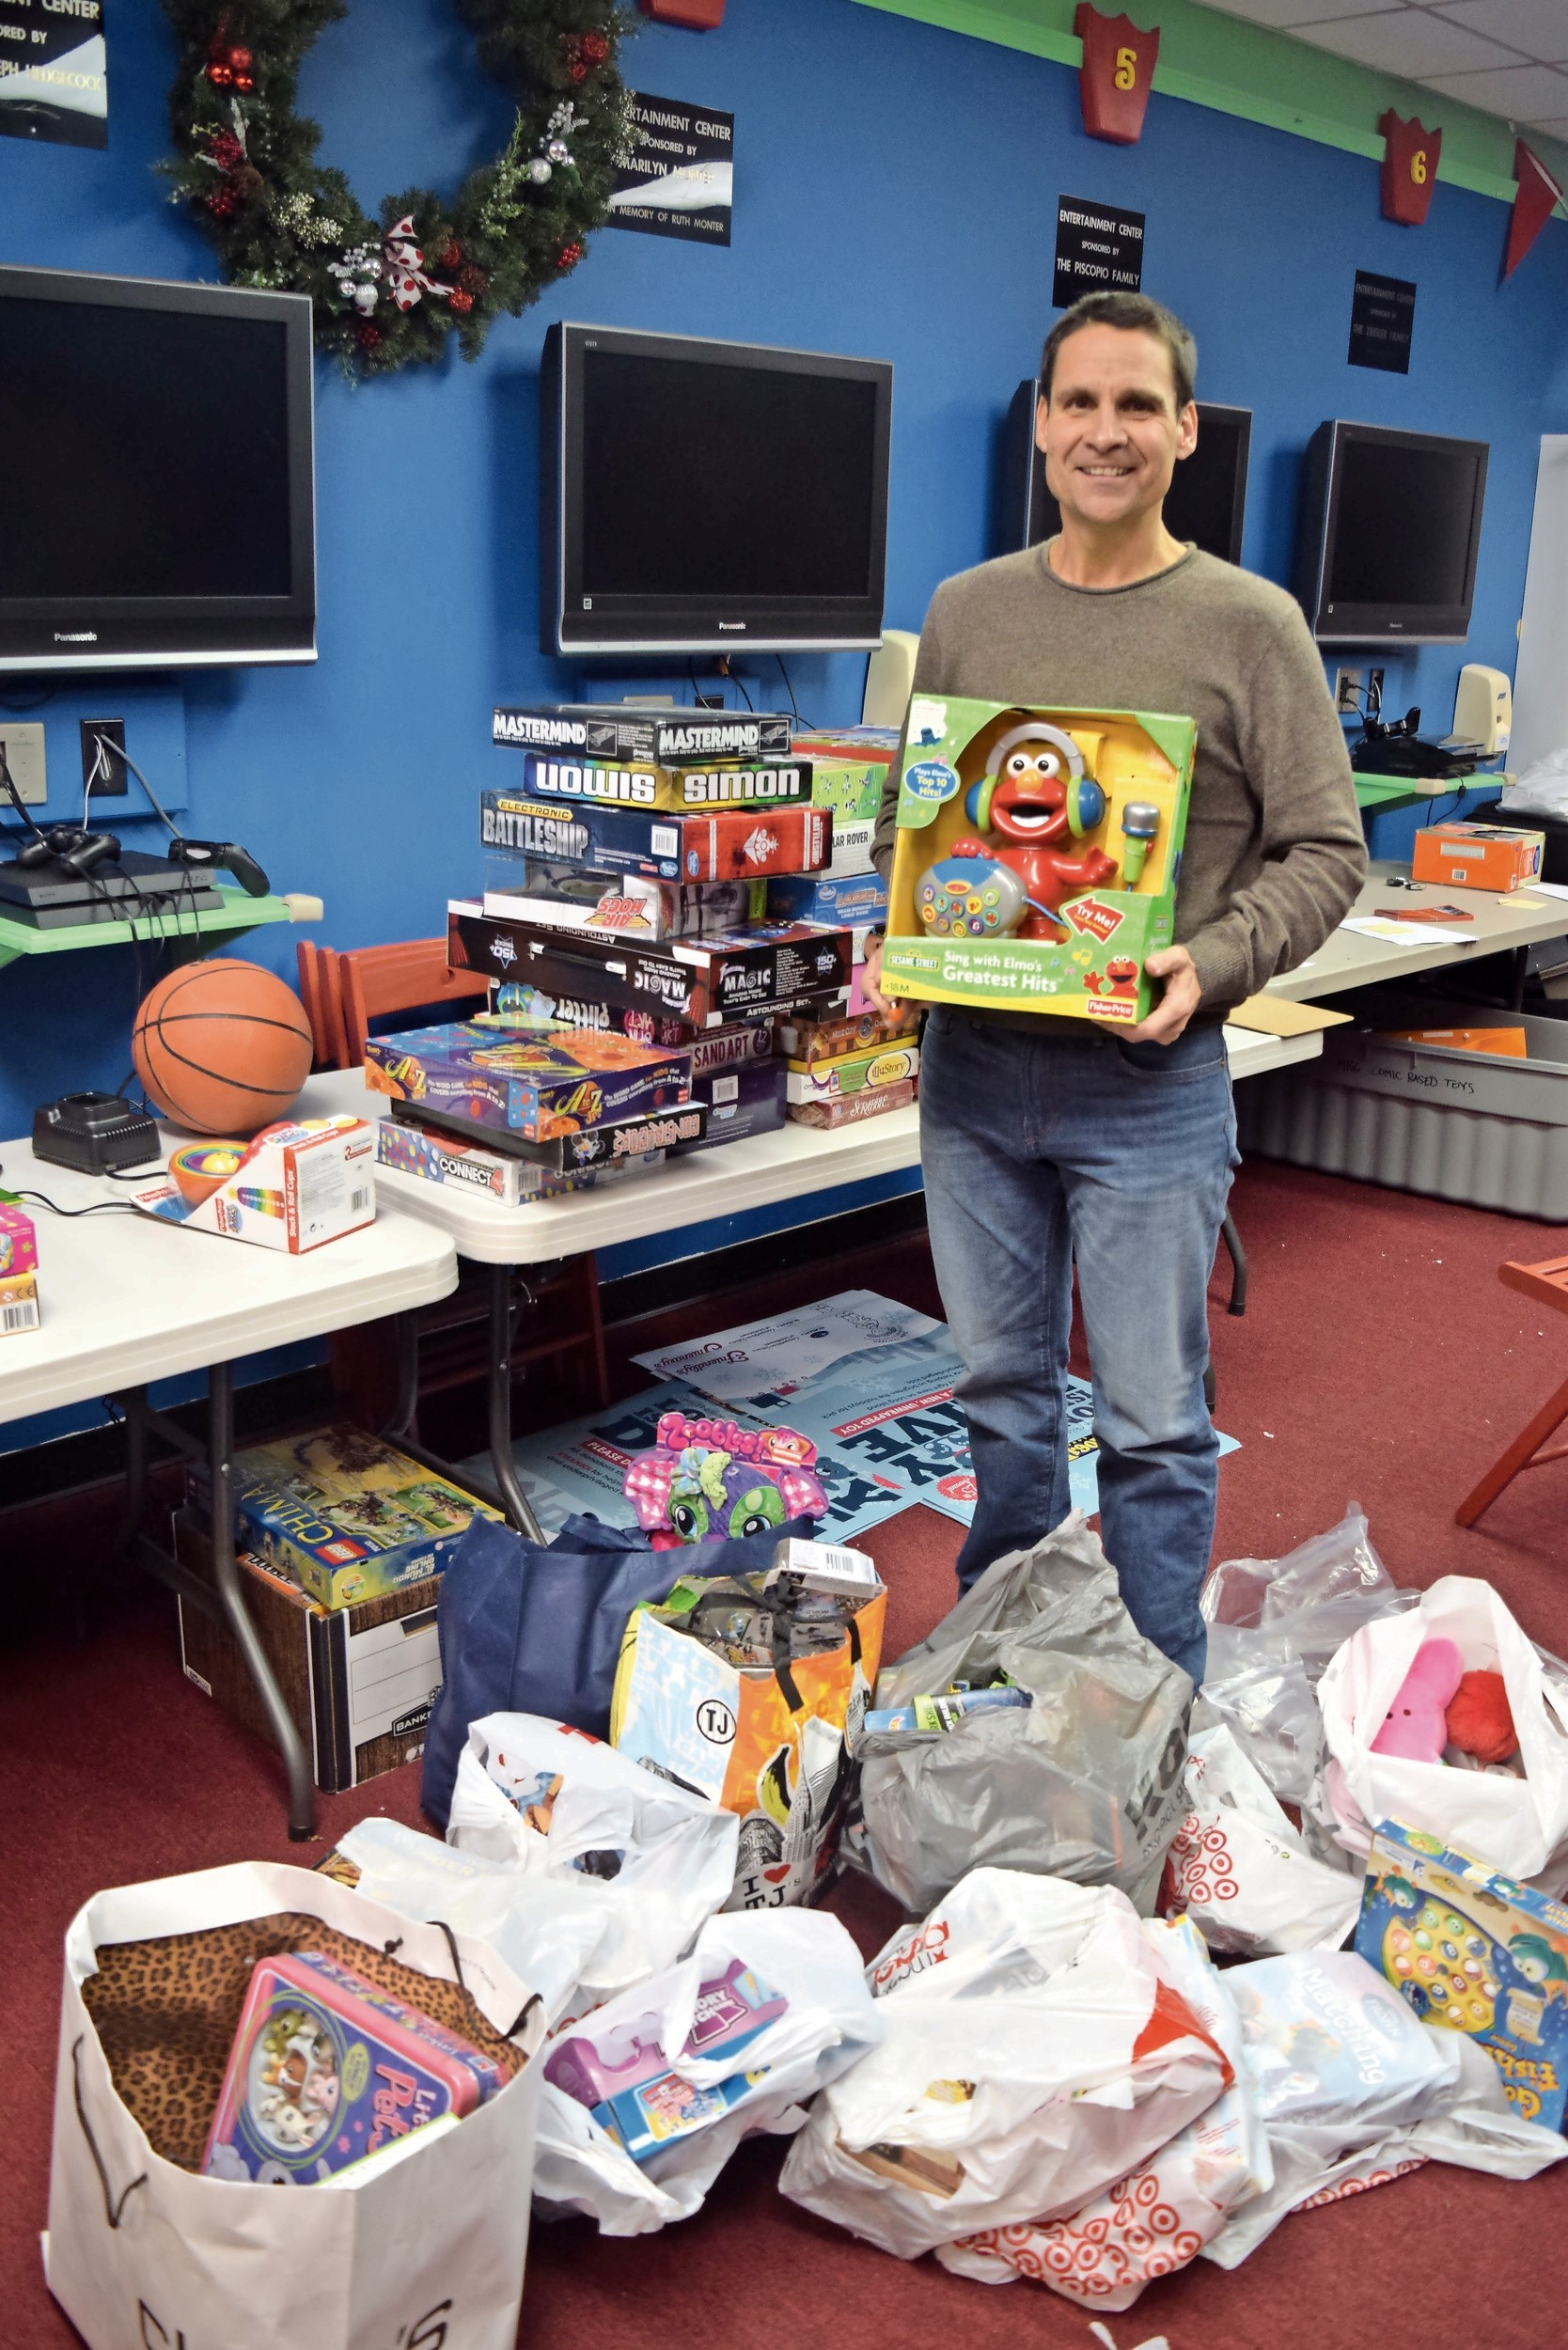 John Theissen said that the Wantagh center serves as home base for his charity's annual back-to-school supply and holiday toy drives.